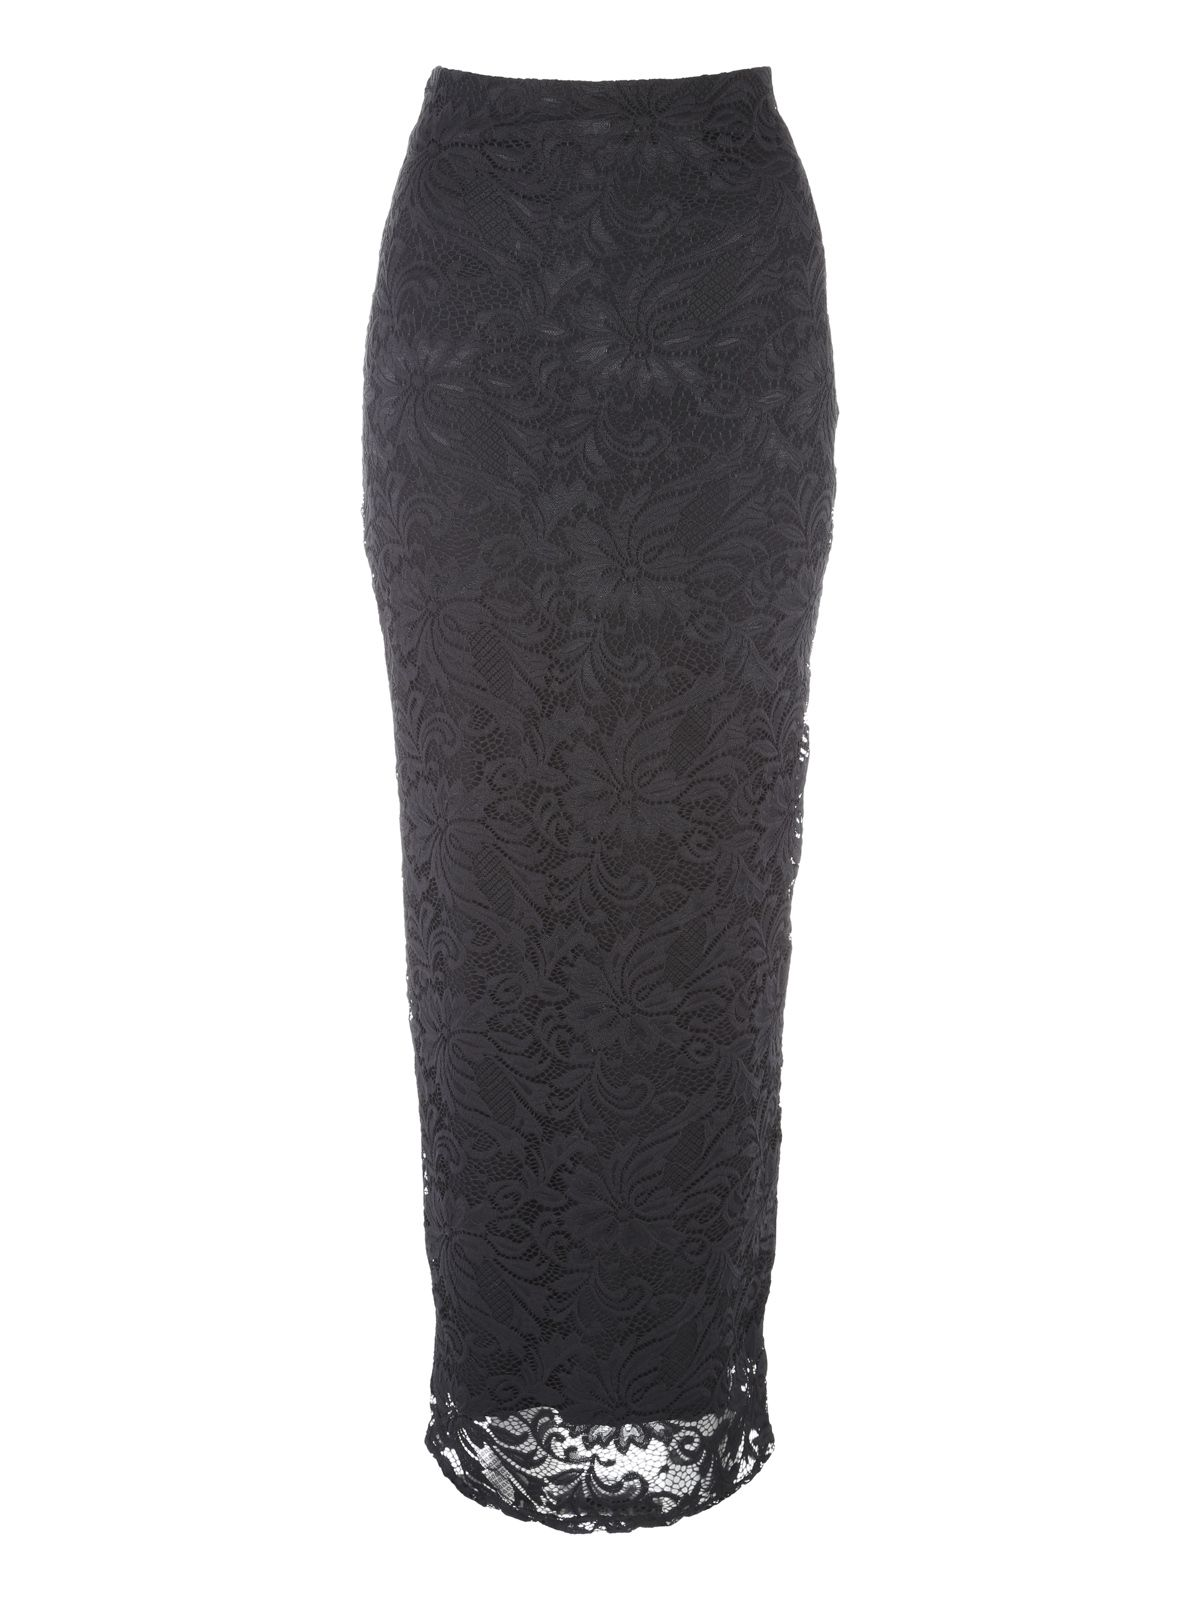 Jane Norman Lace Maxi Skirt, Black